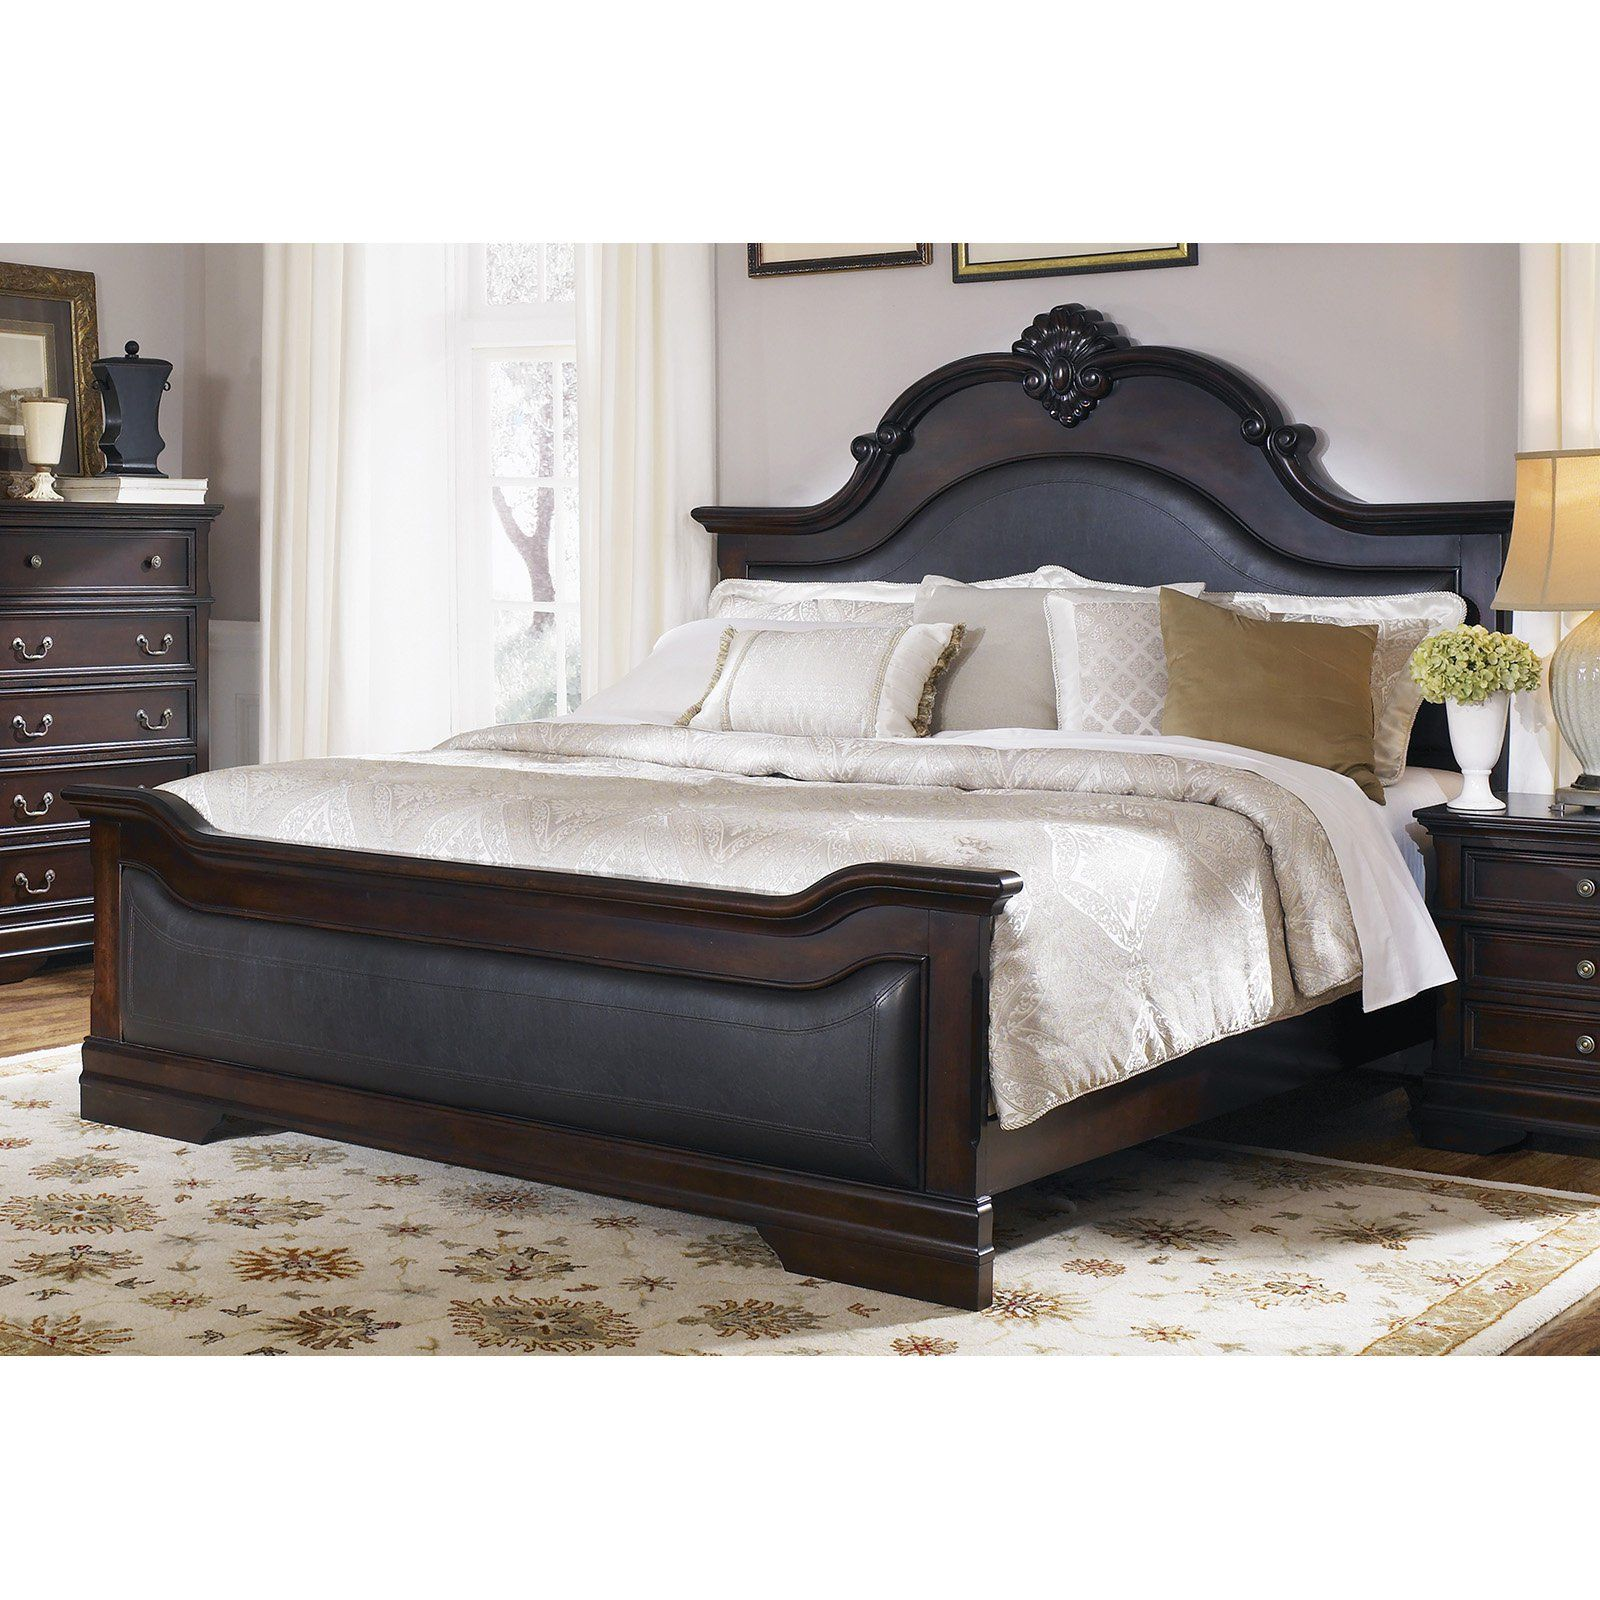 Coaster Furniture Cambridge Upholstered Bed Size King In 2020